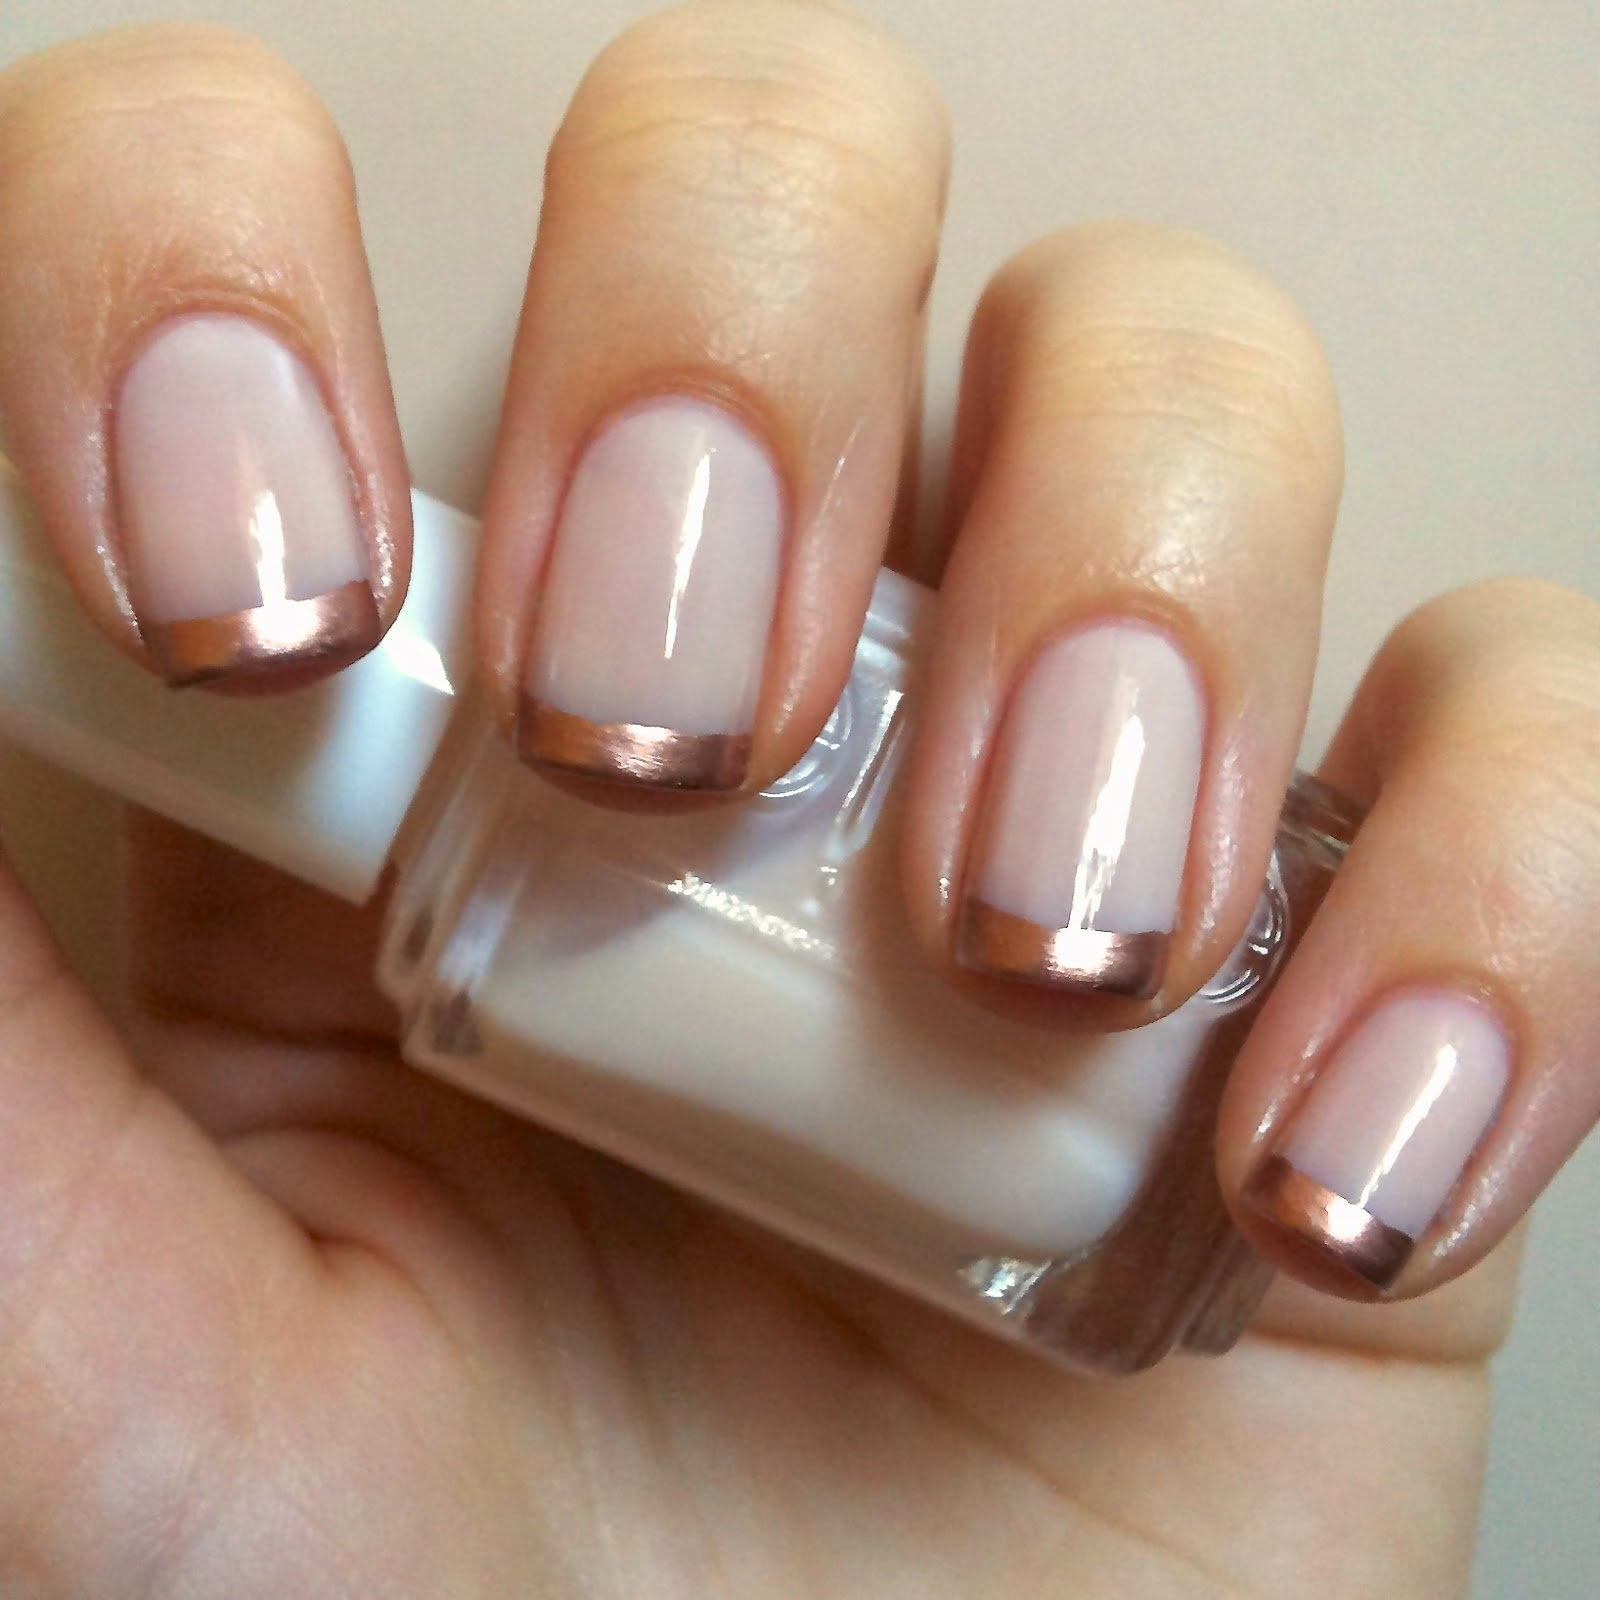 This French Manicure